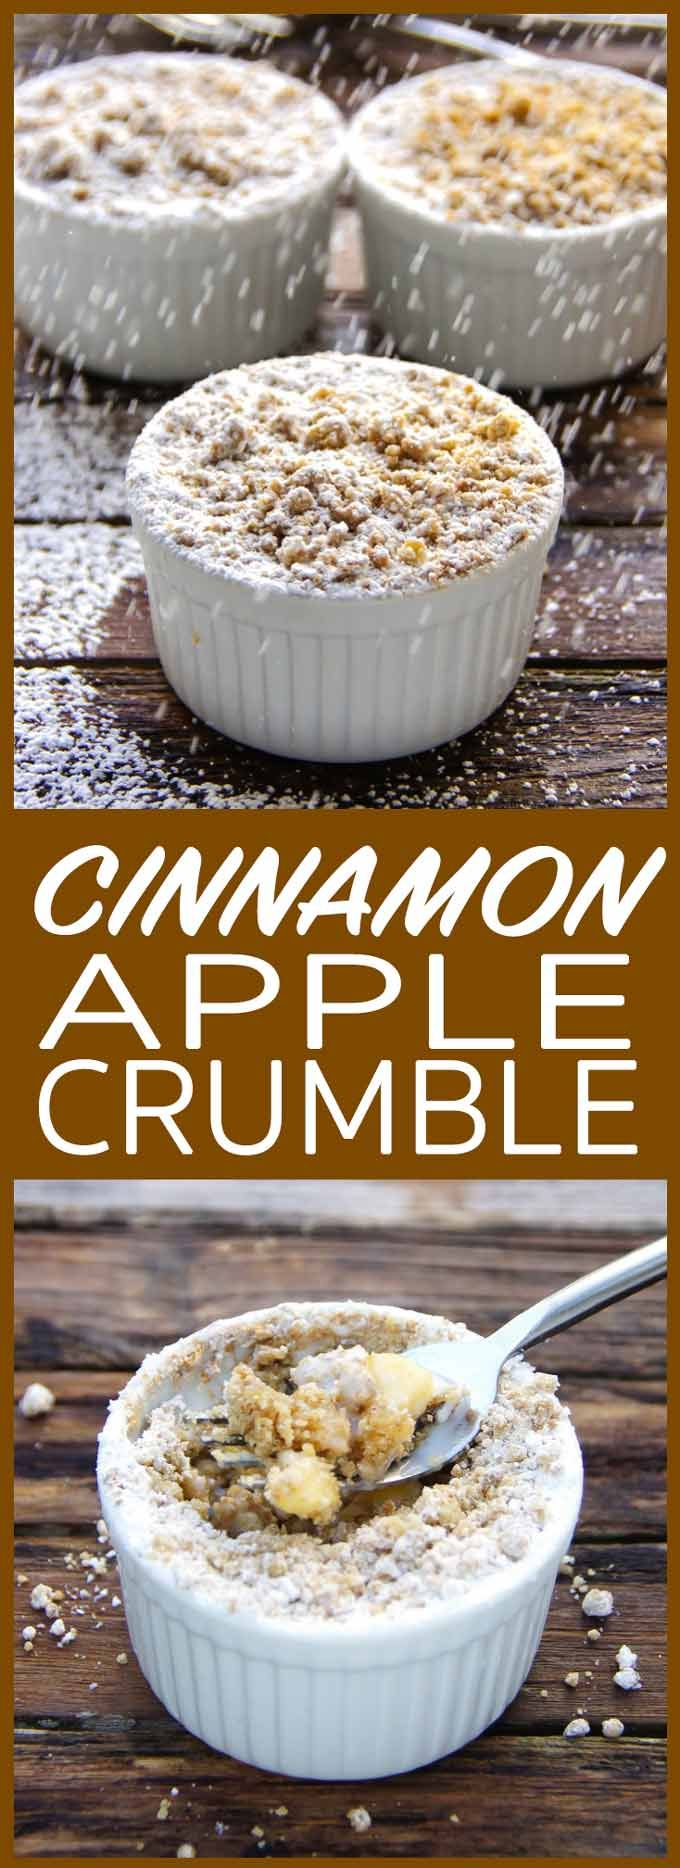 Cinnamon Apple Crumble Recipe {Gluten Free!} | Garlic Matters - Apple Recipes